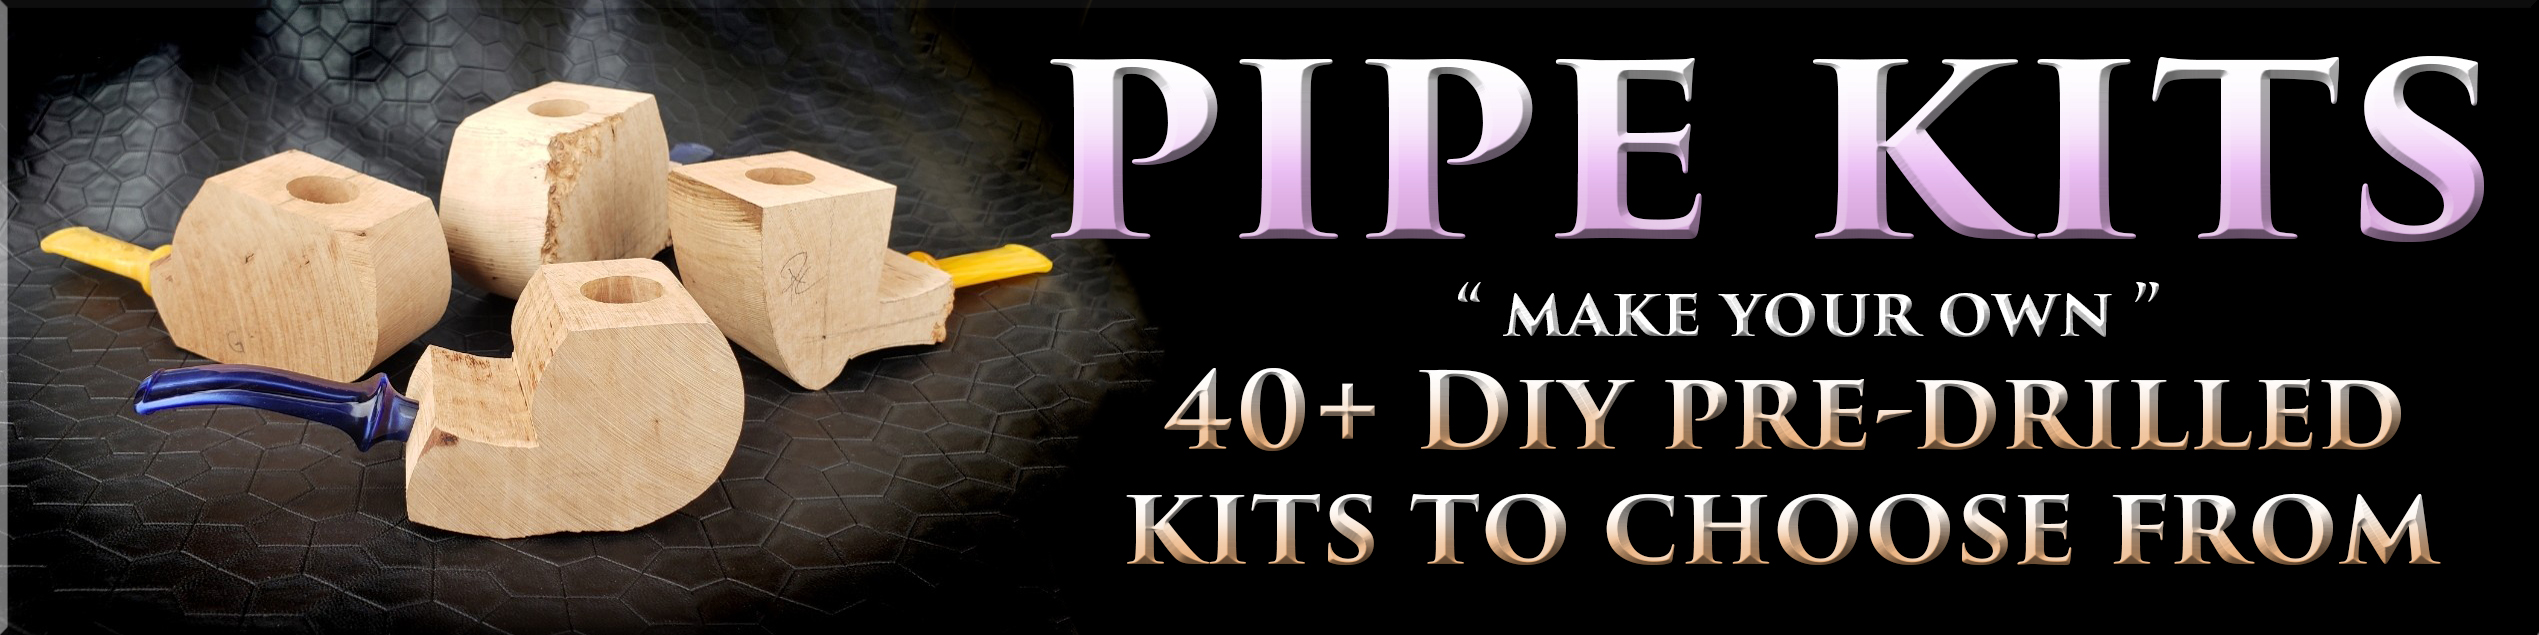 Pre Drilled Kits